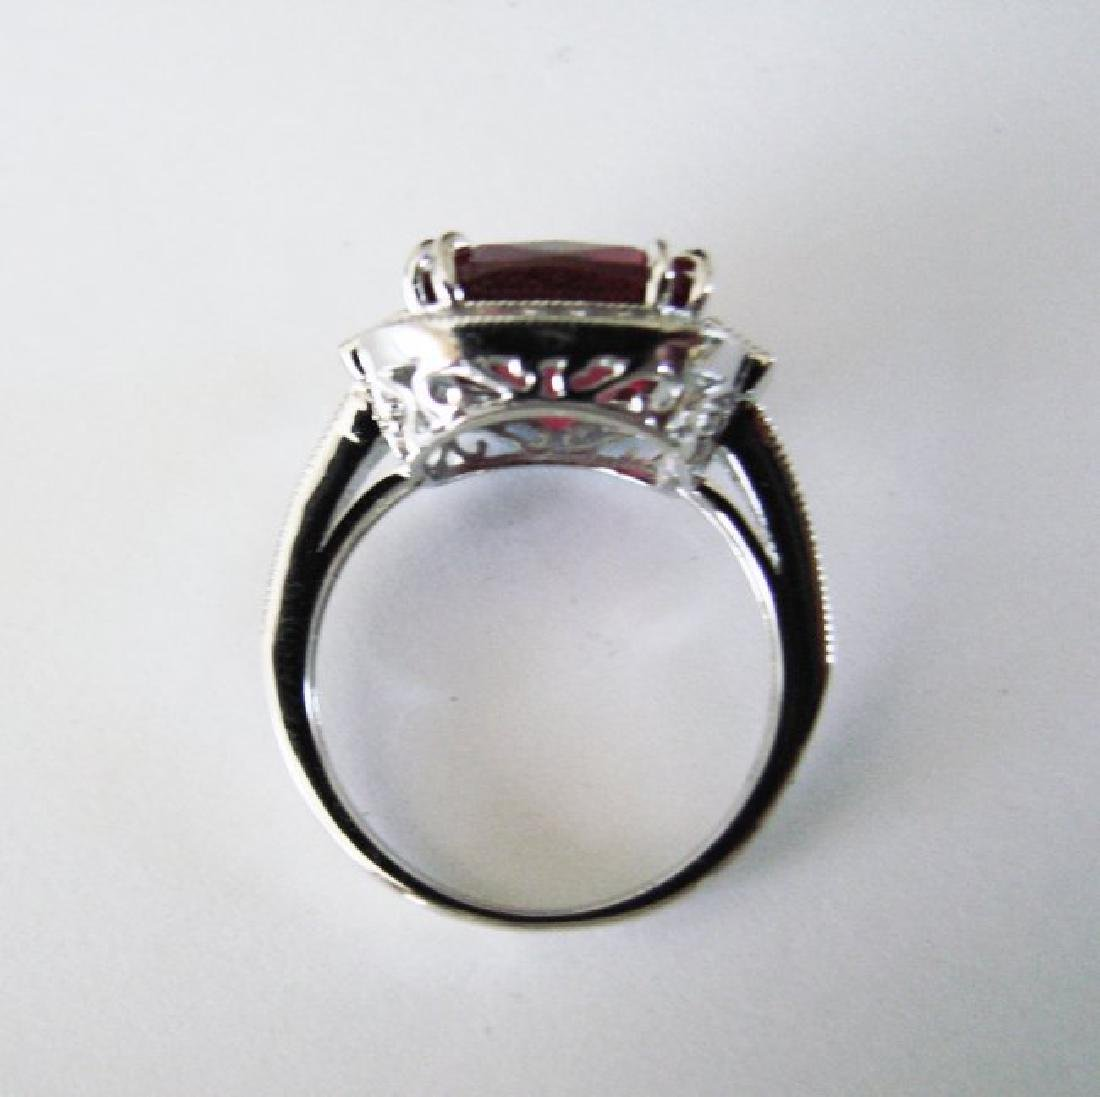 Creation Daimond Ruby Ring 7.61Ct 18k W/g Overlay - 4